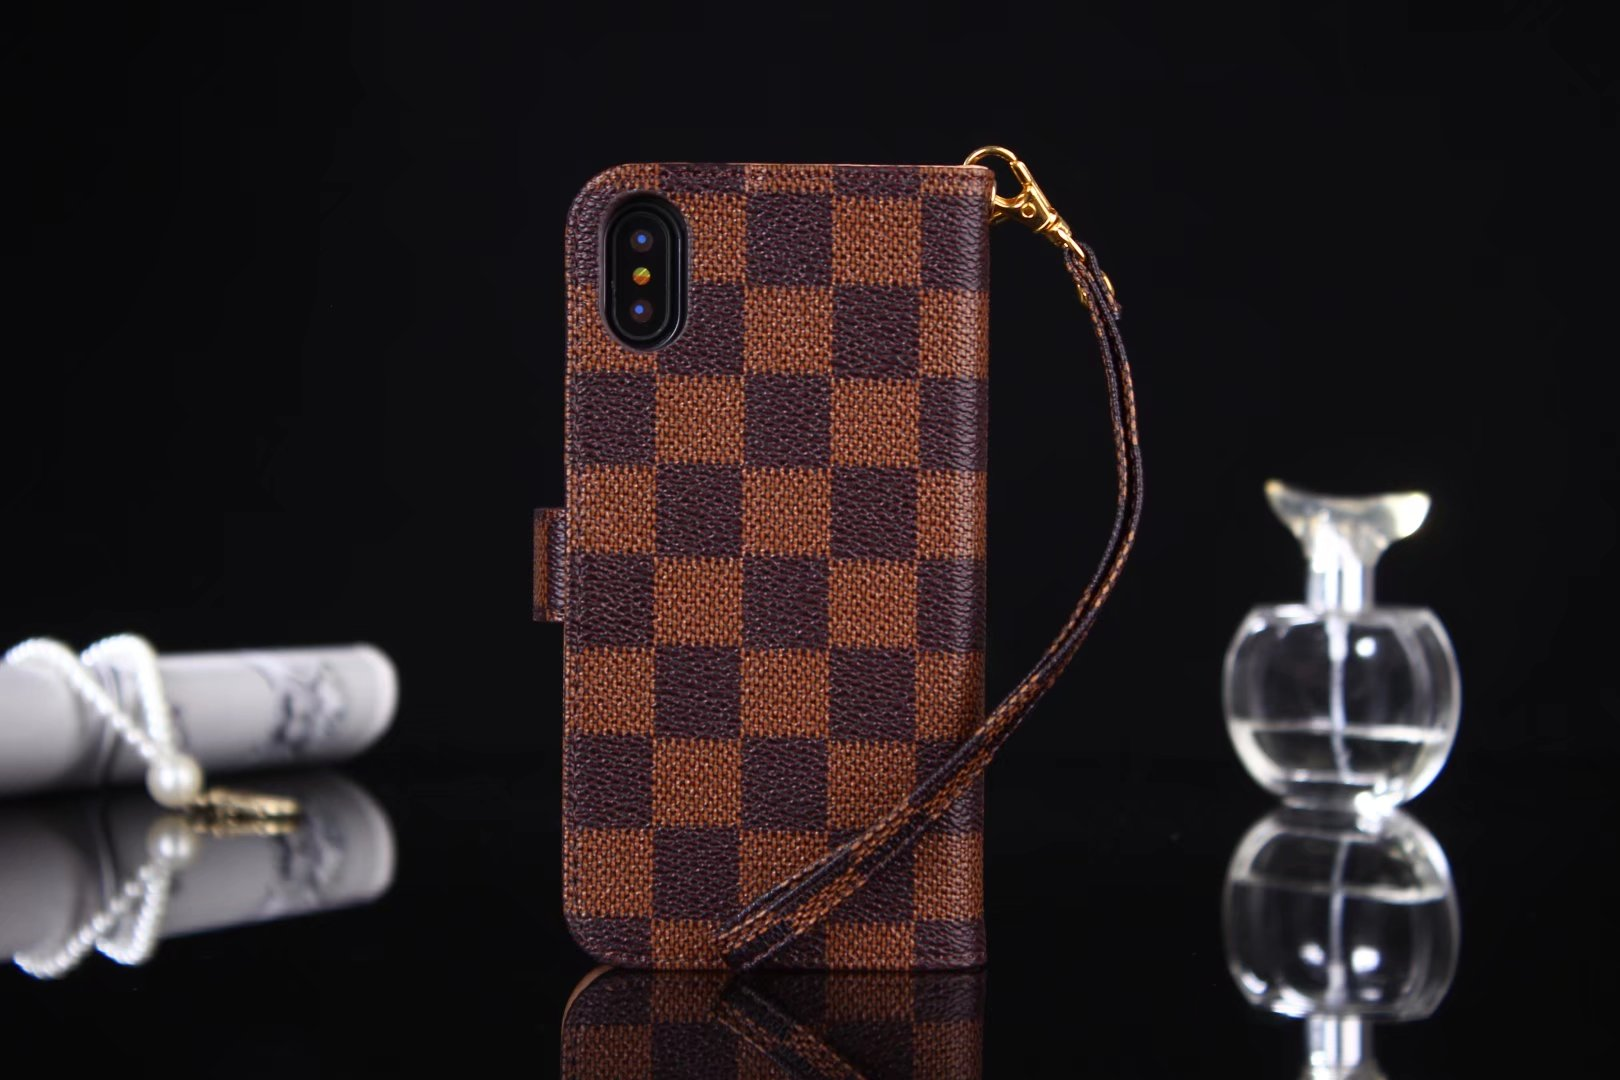 design an iphone X case iphone X cell phone covers Louis Vuitton iPhone X case more phone cases bumper case for iphone 6 iphone covers for 8 make your own custom iphone case shop iphone 6 cases customize your iphone case